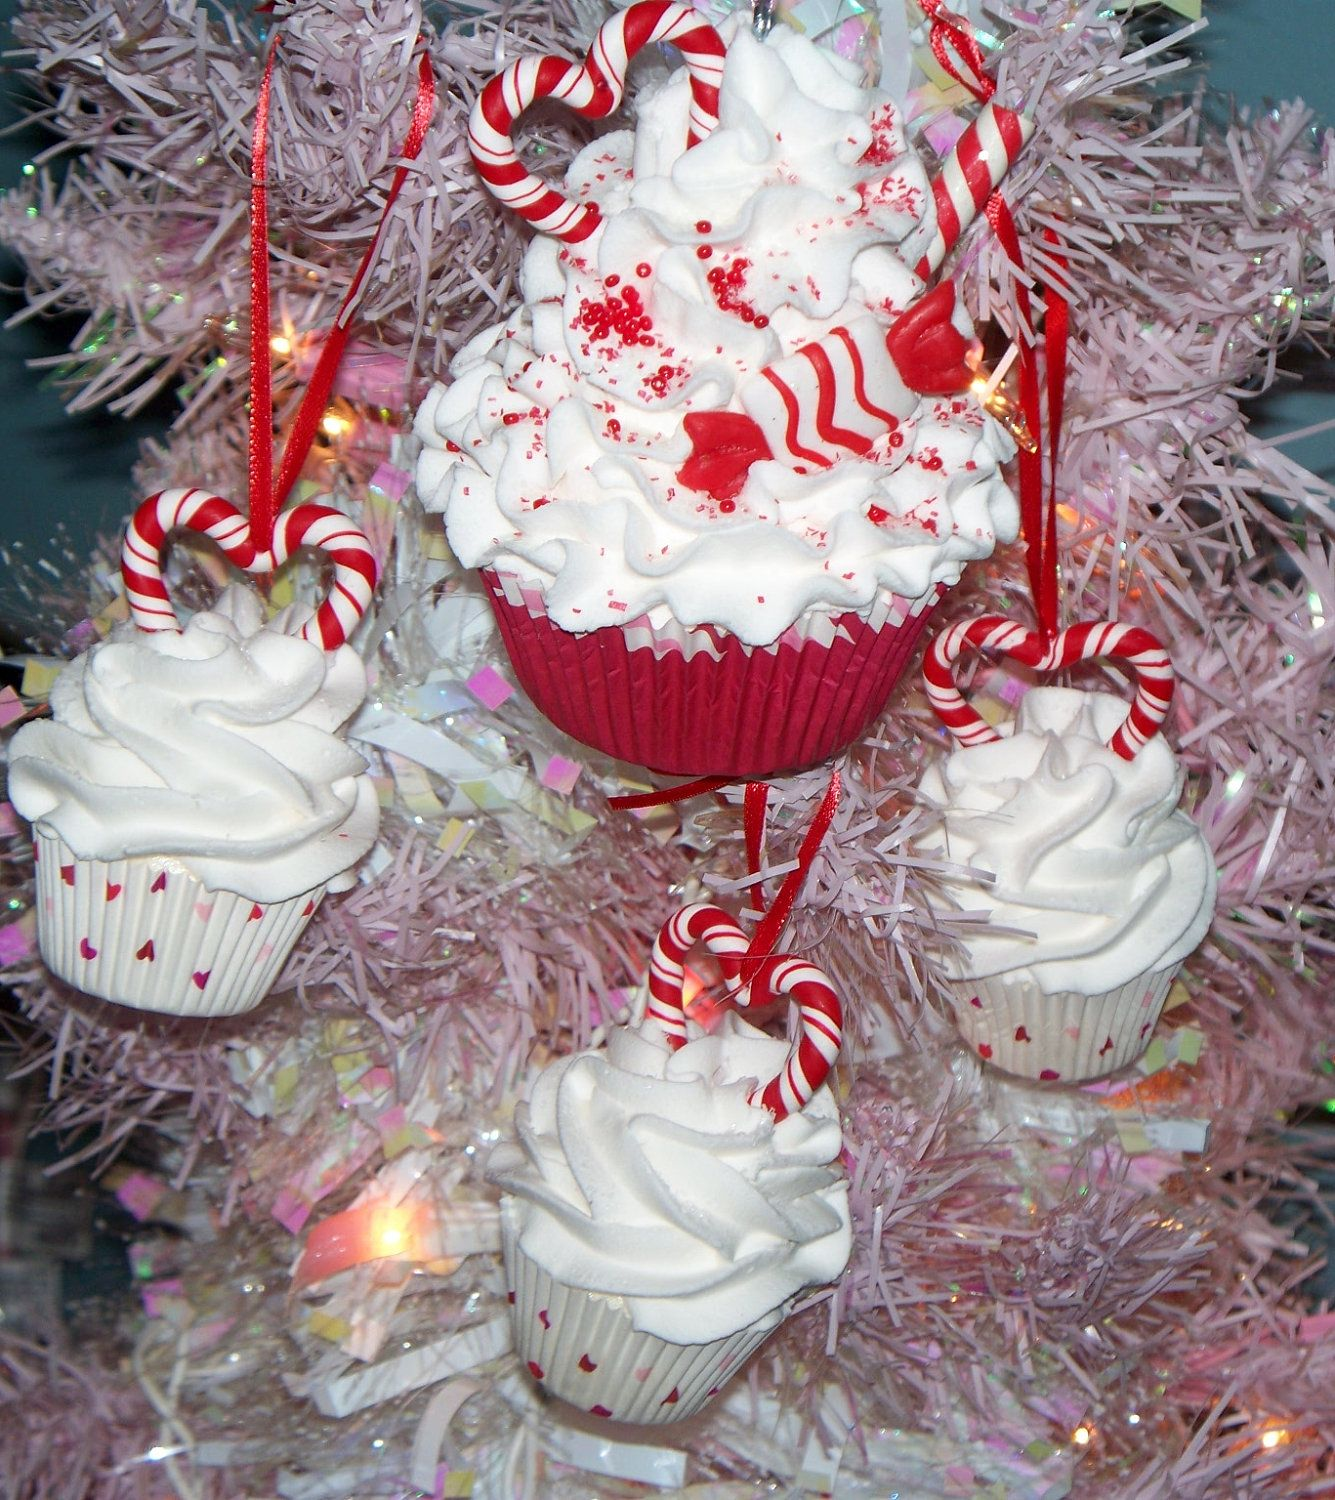 Candy Cane Hearts Set Fake Cupcake Christmas Ornaments For Holiday